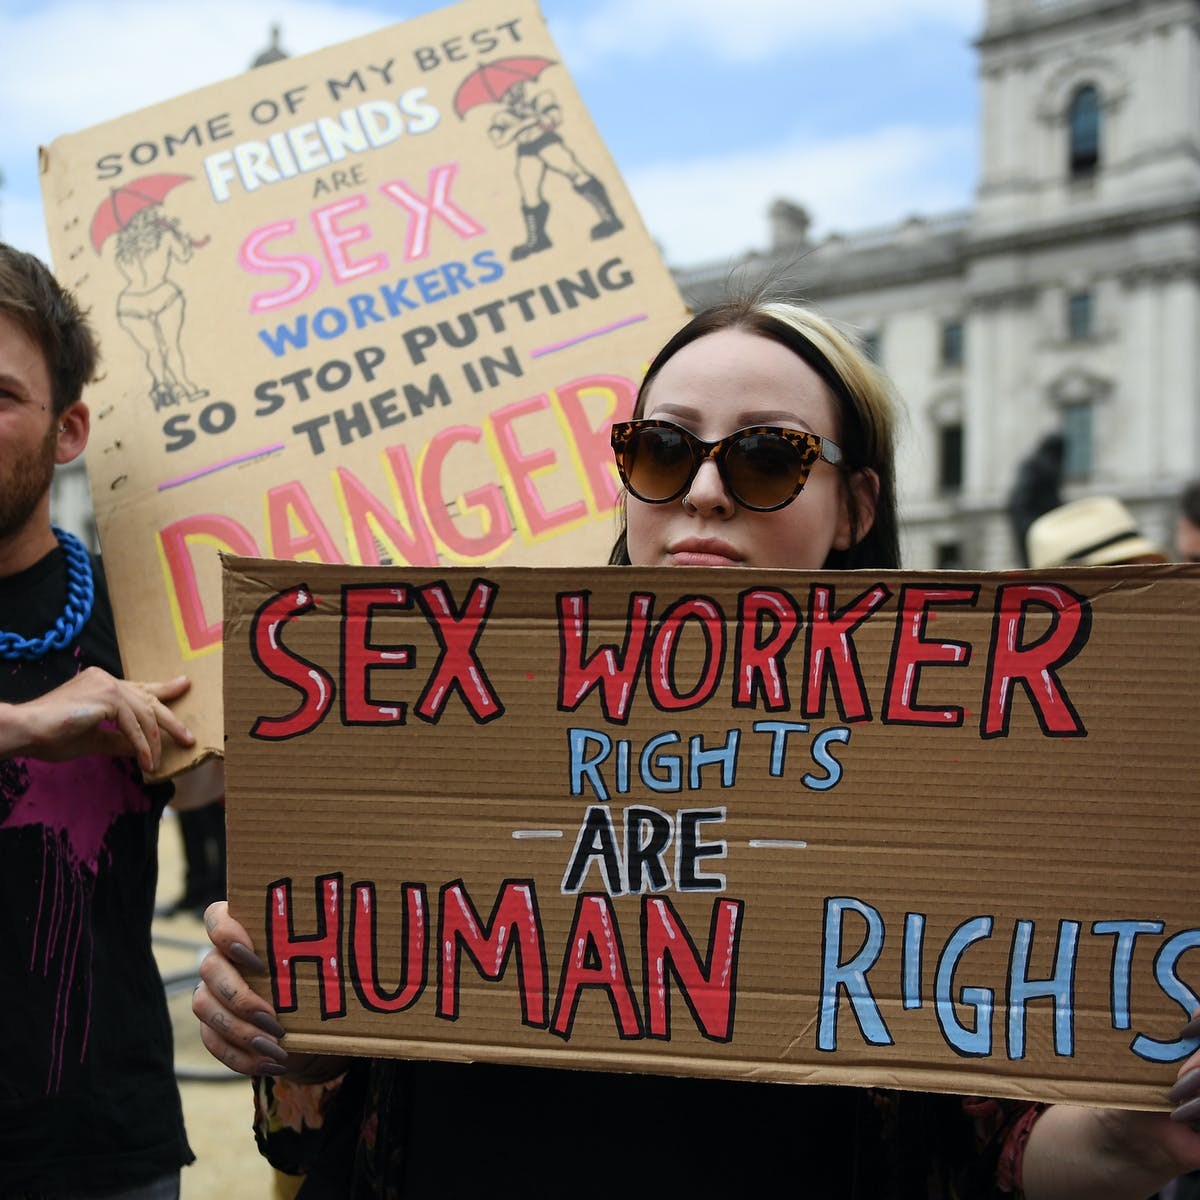 Banning sex work advertising online will put sex workers in